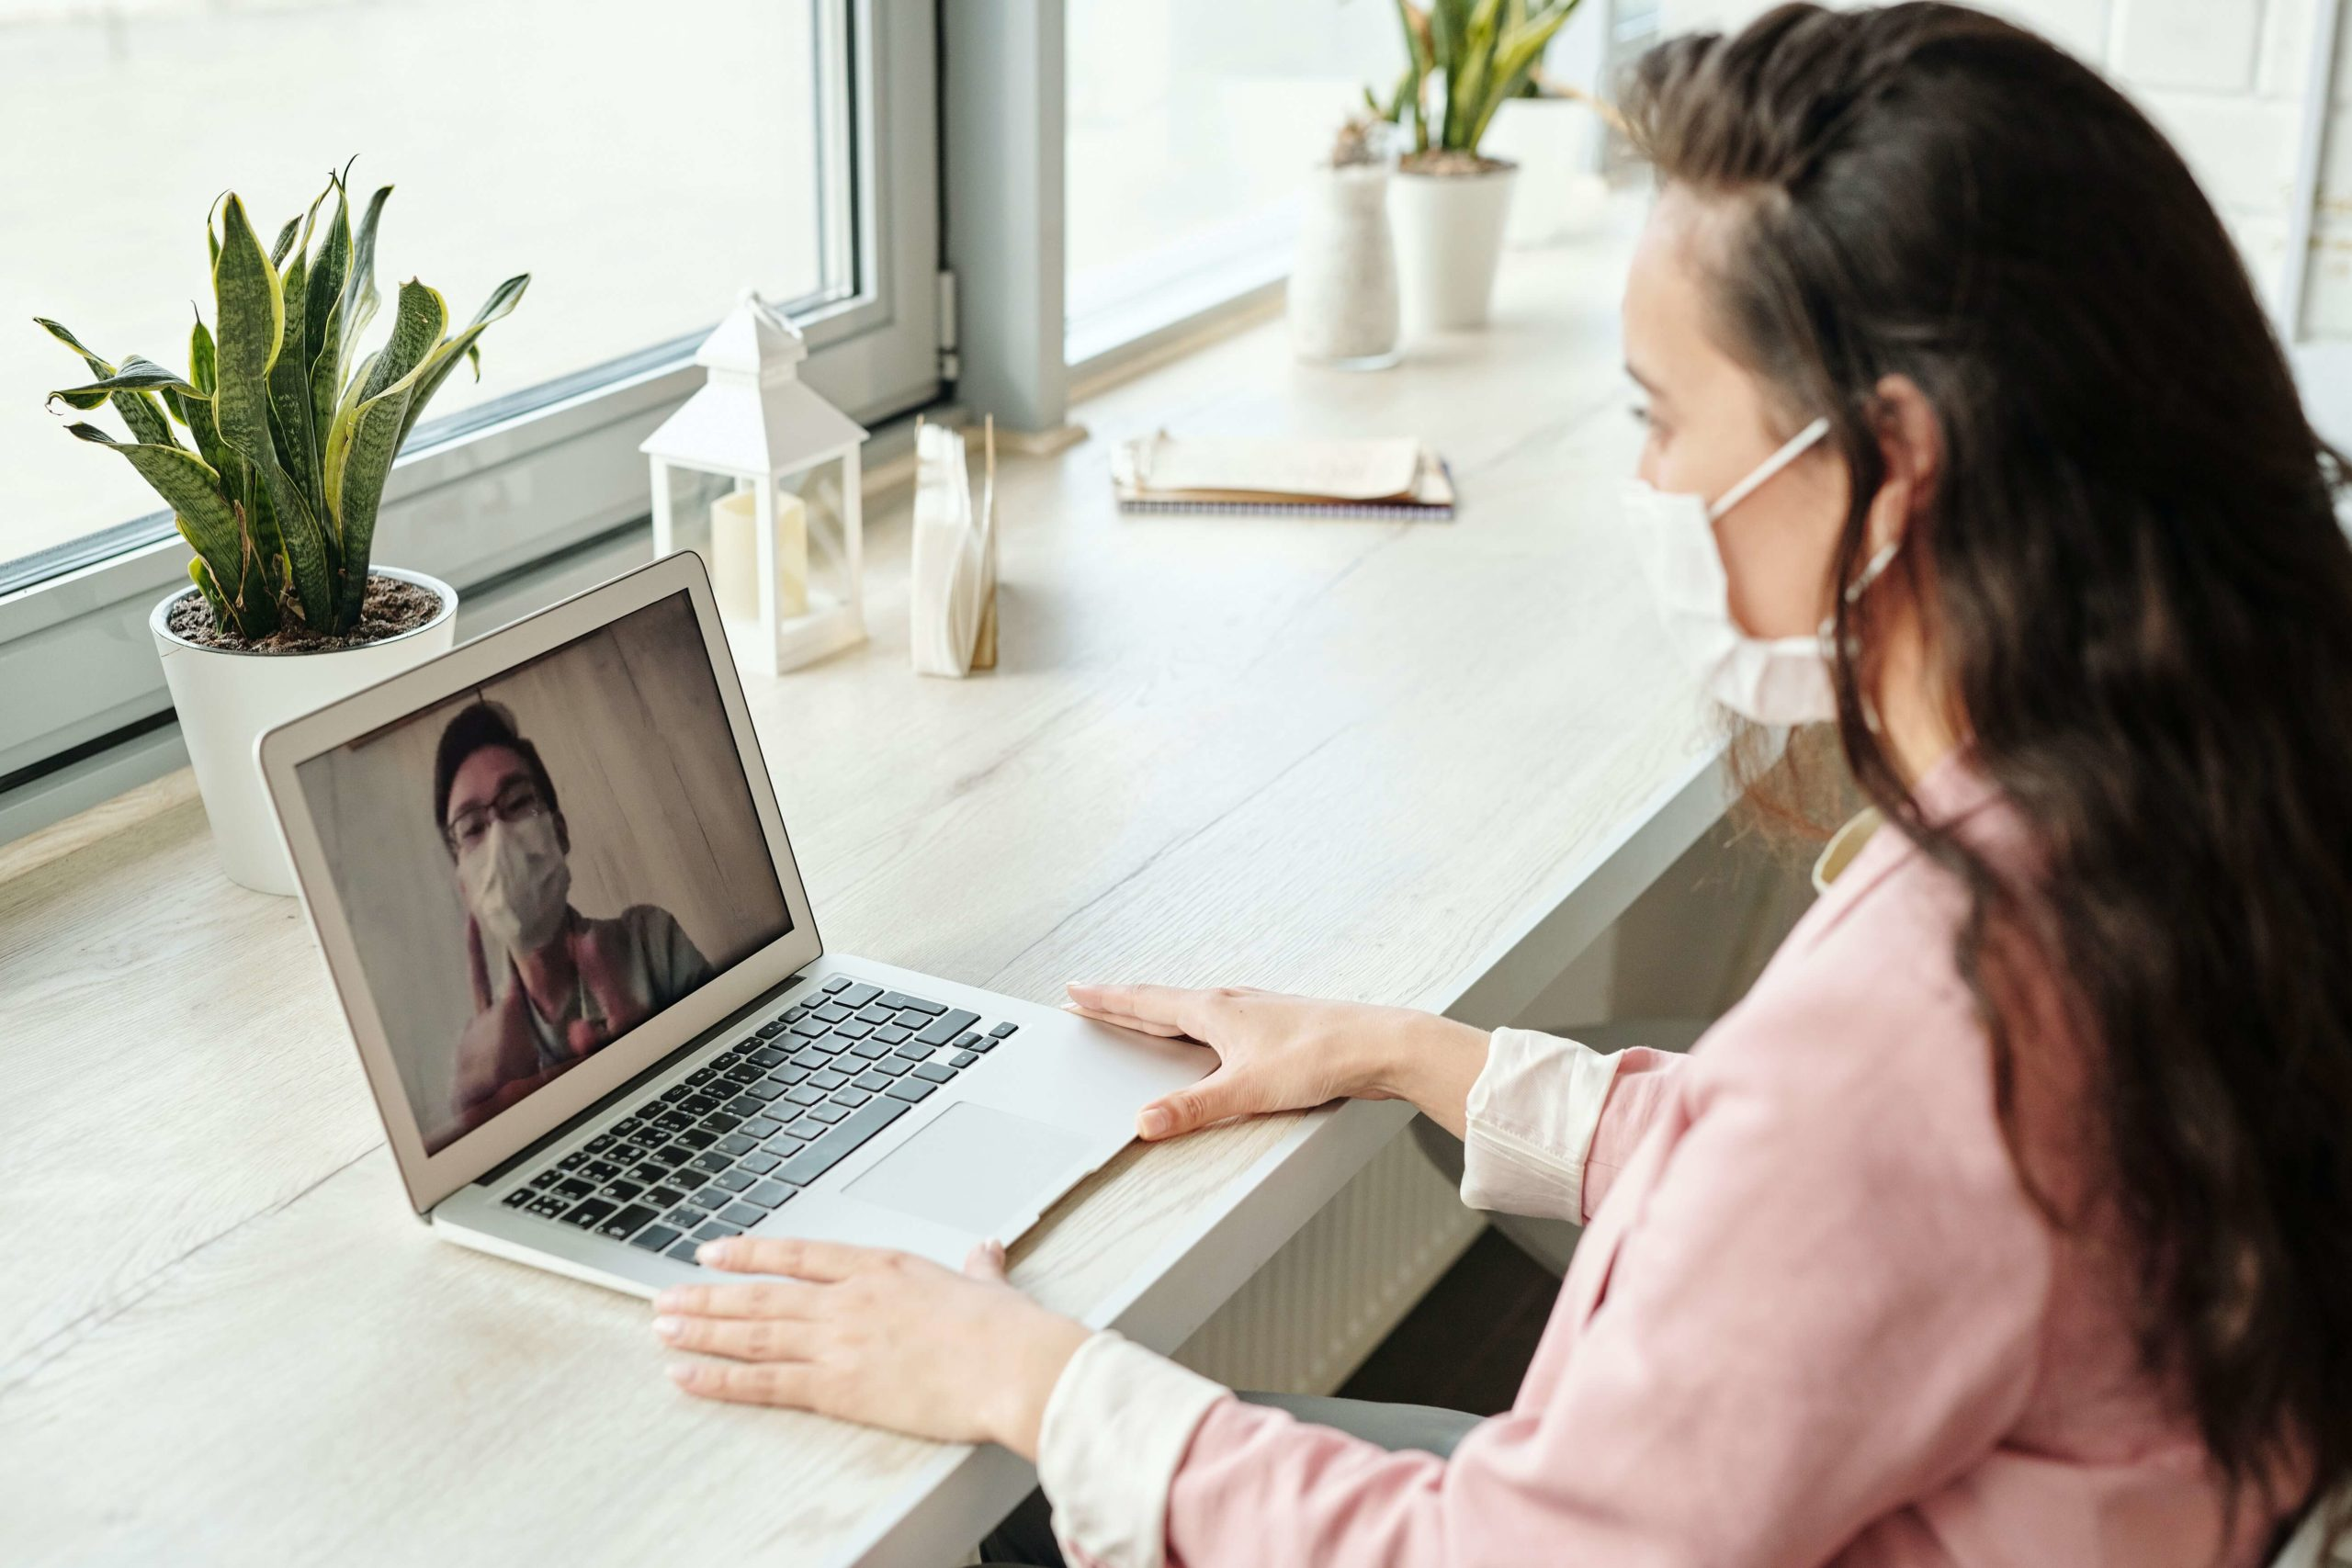 AI and IoT transform healthcare by improving telemedicine services